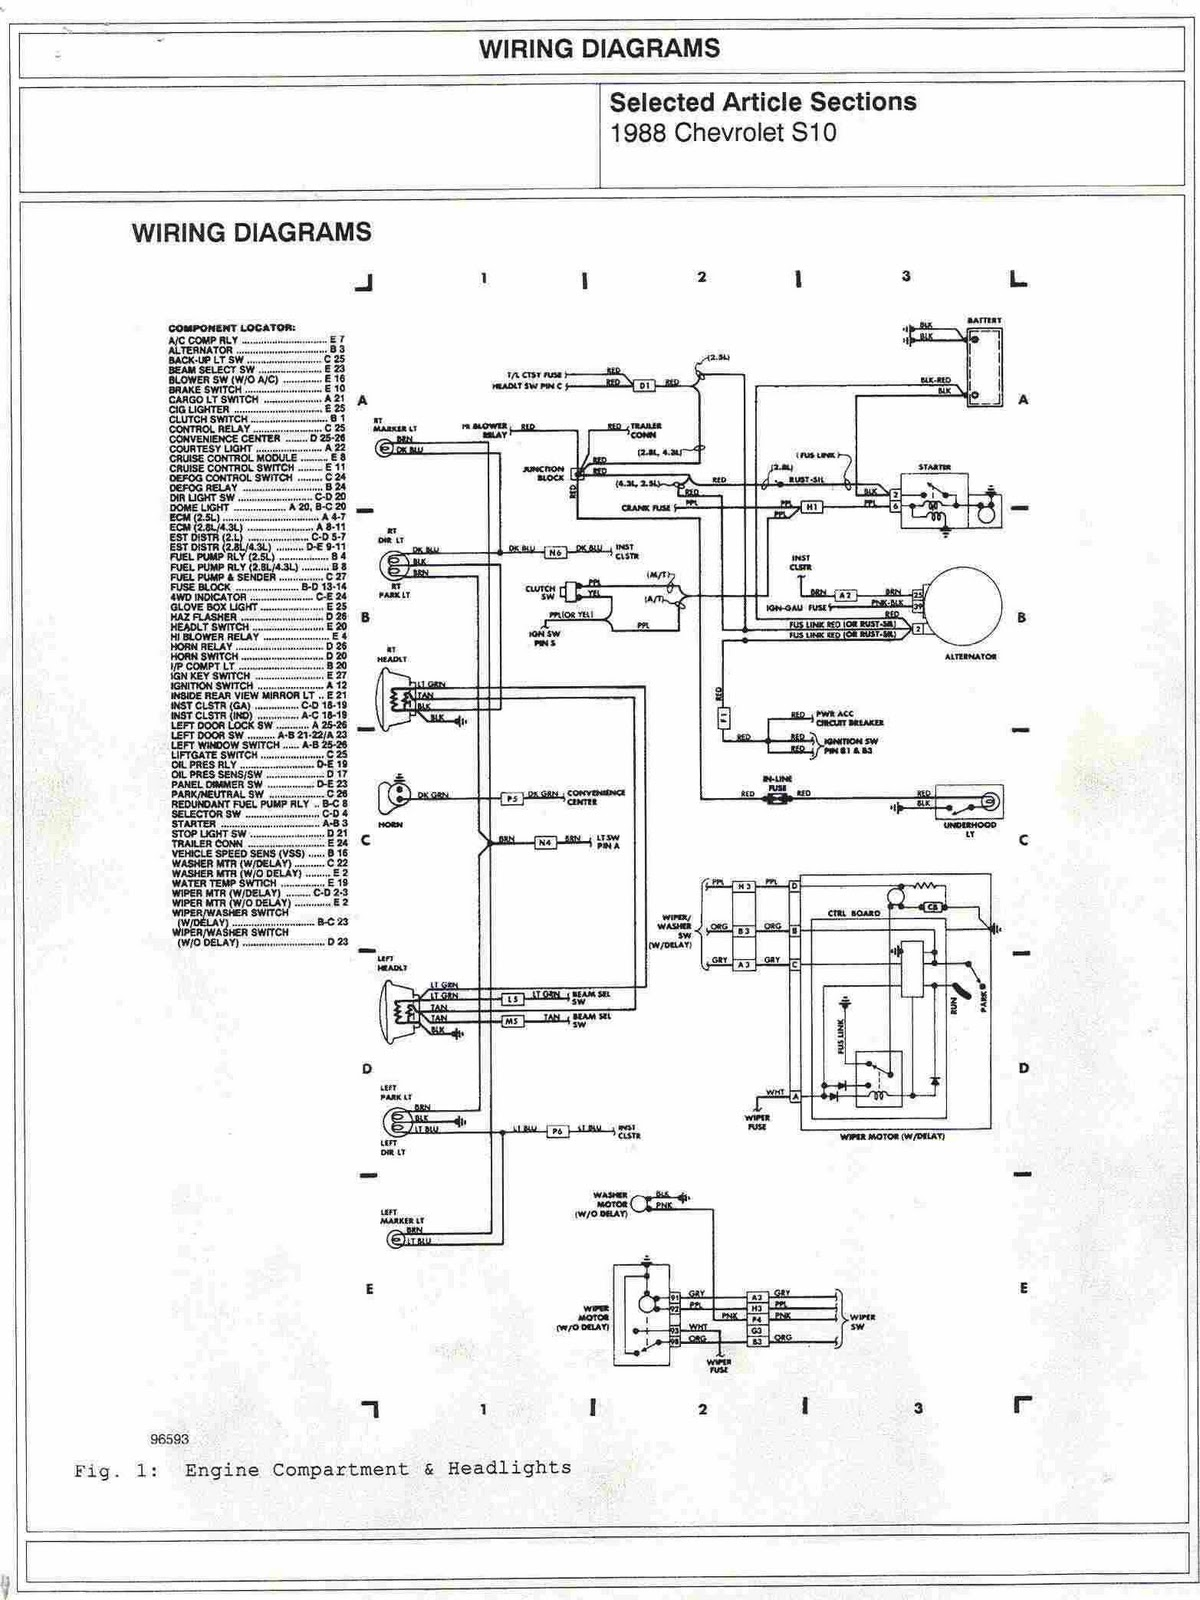 2009 Chevrolet Captiva Wiring Diagram Library 1993 Chevy Truck Schematics U2022 1988 S10 Engine Compartment